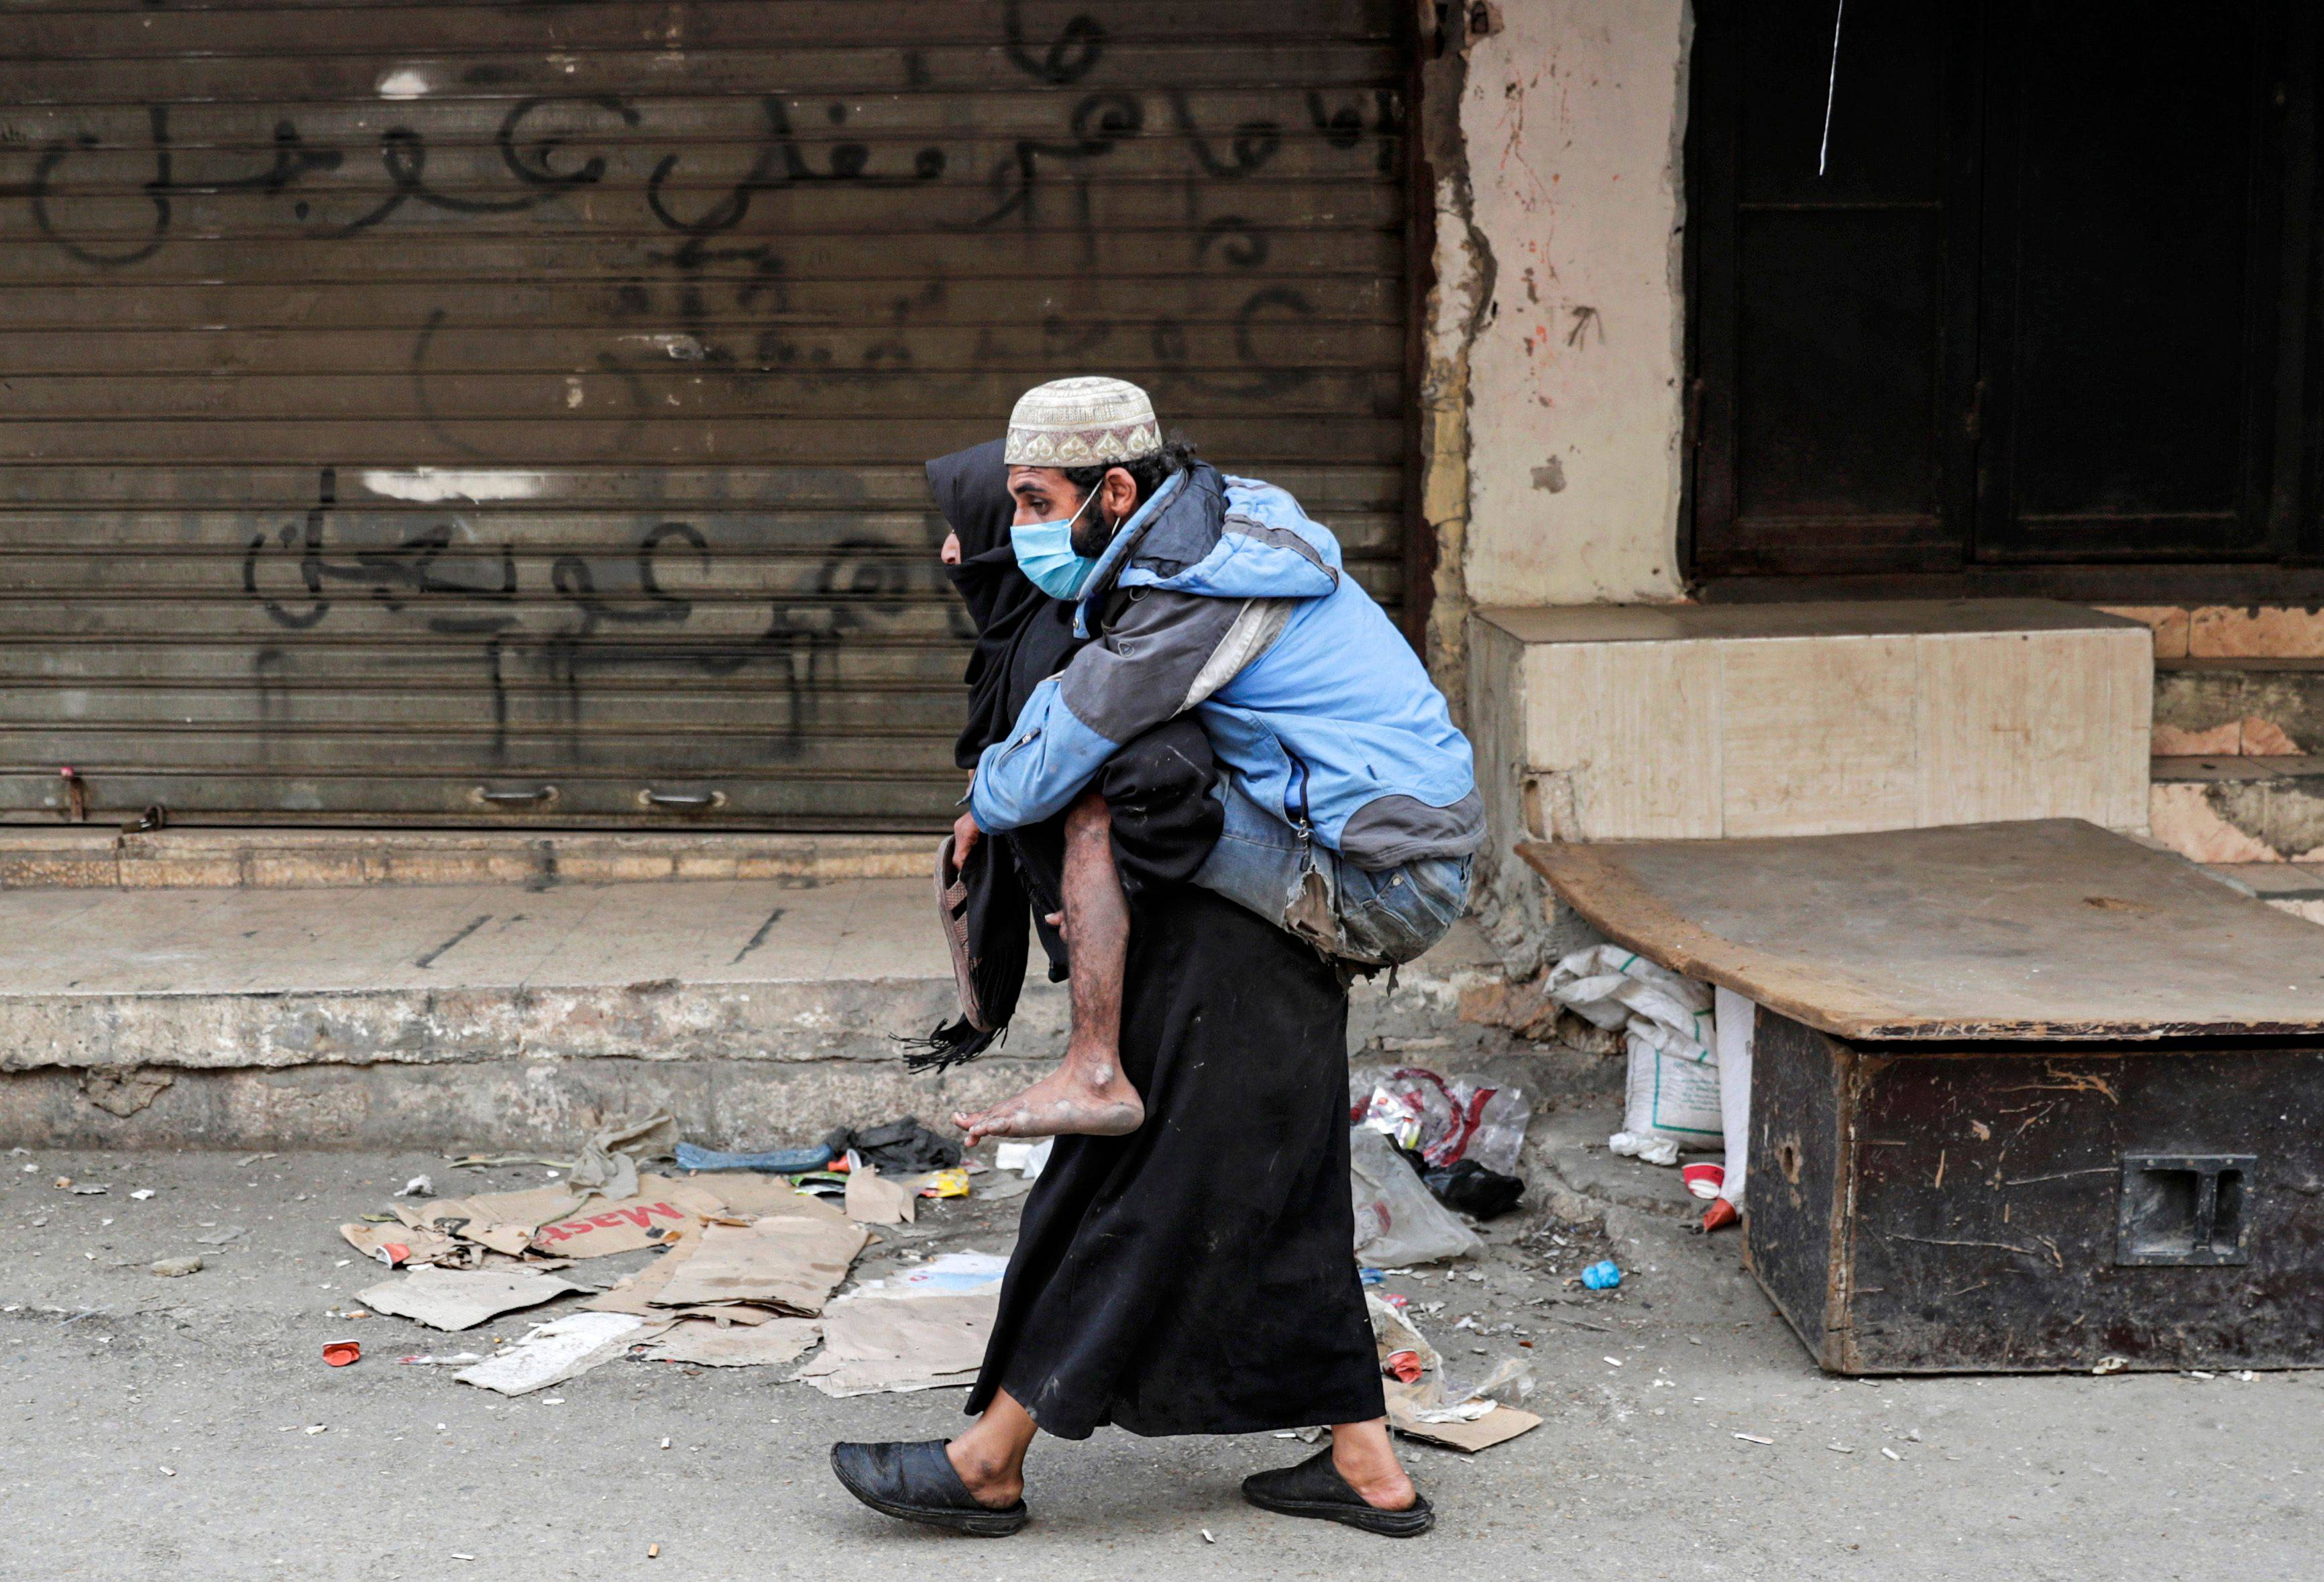 A woman carries a man wearing a protective face mask in the market of the Palestinian refugee camp of Sabra south of Beirut on March 22. (Anwar Amro/AFP/Getty Images)